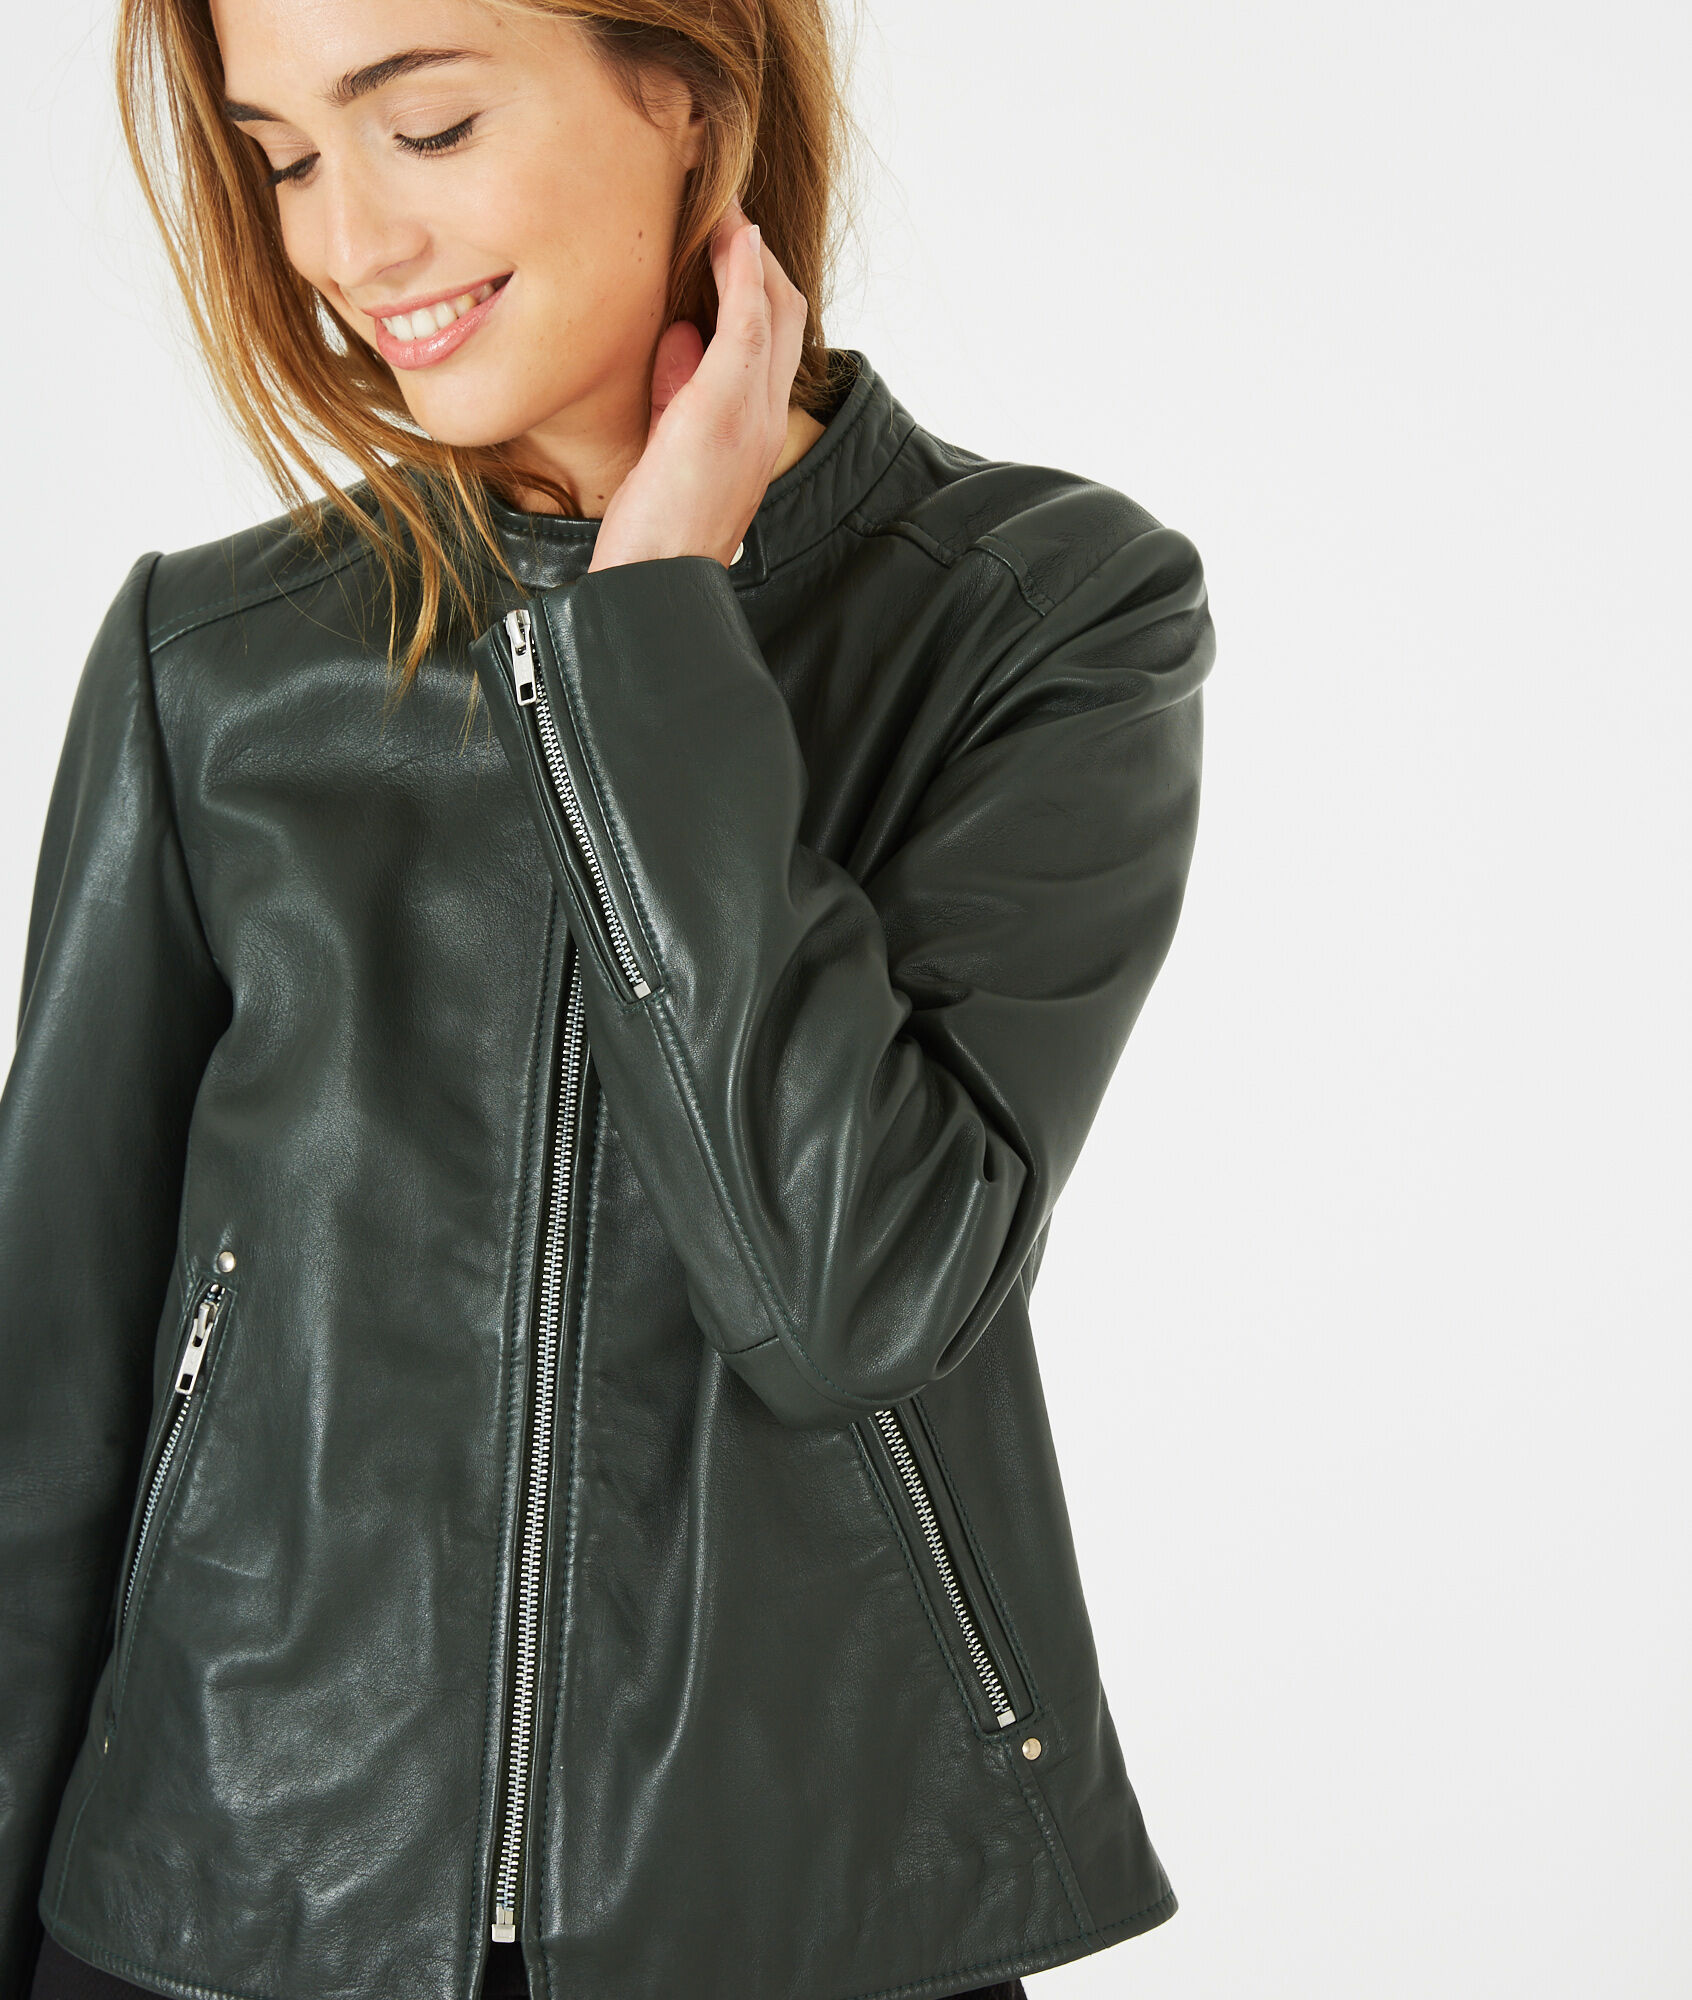 Hugo forest green leather jacket - 123